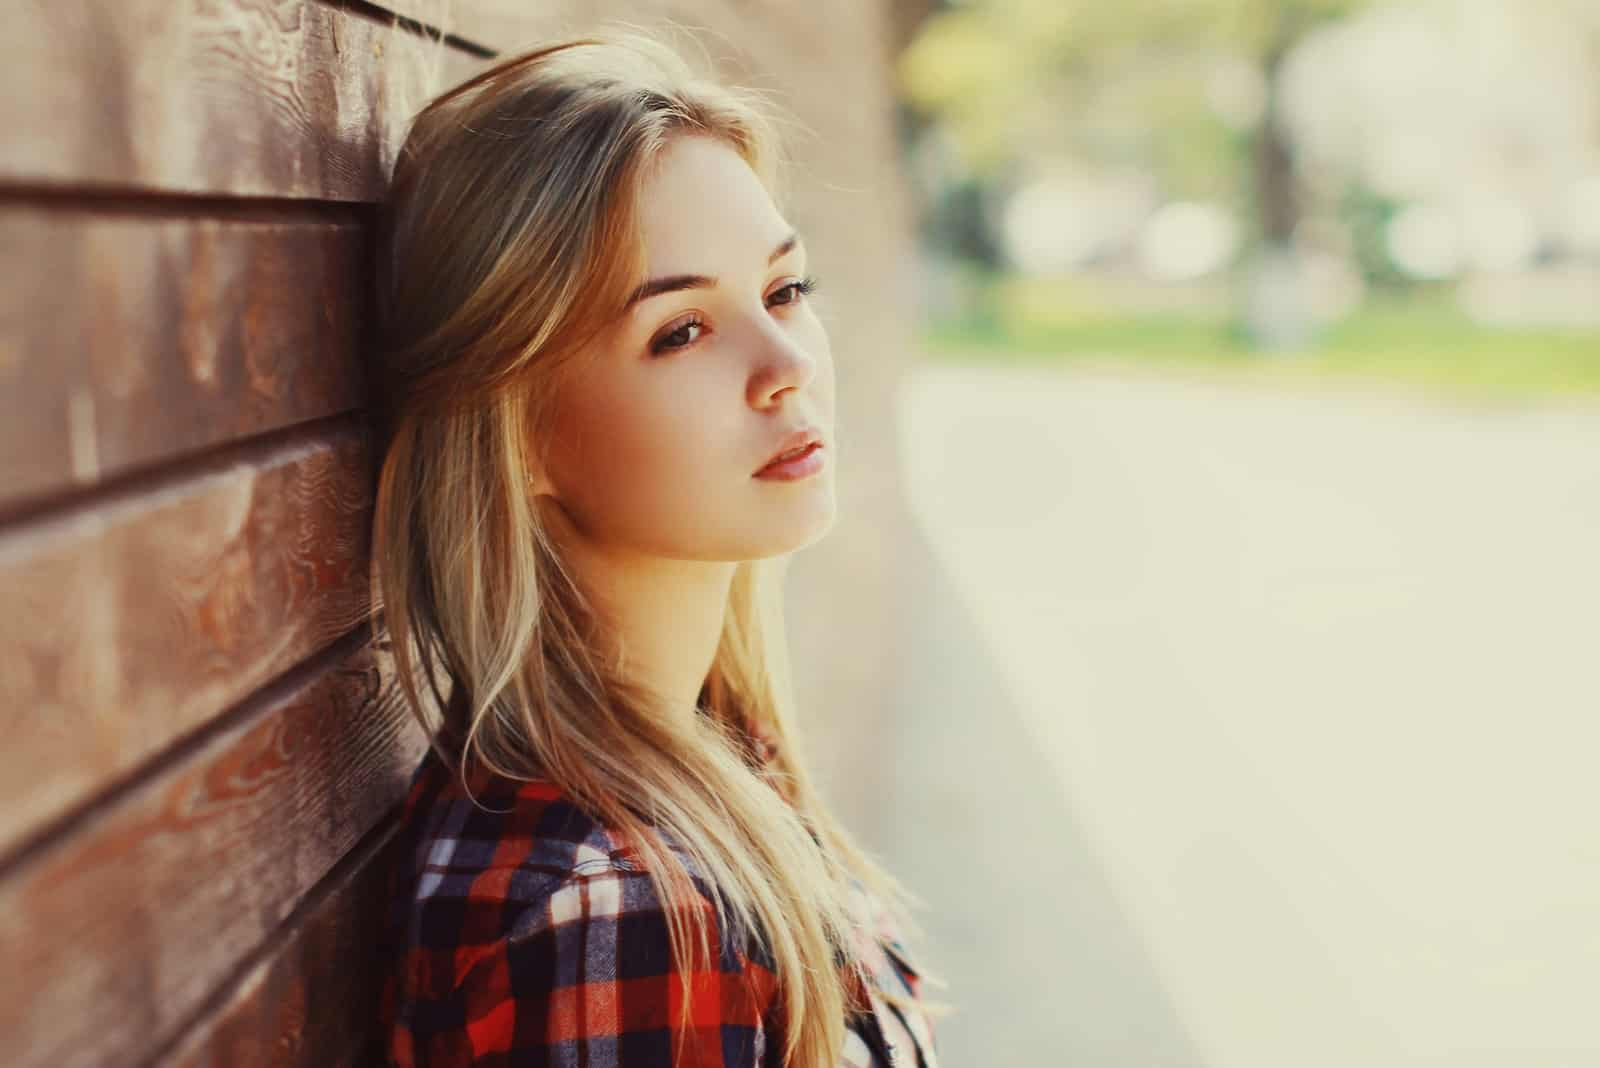 blonde woman in red checked shirt leaning wall